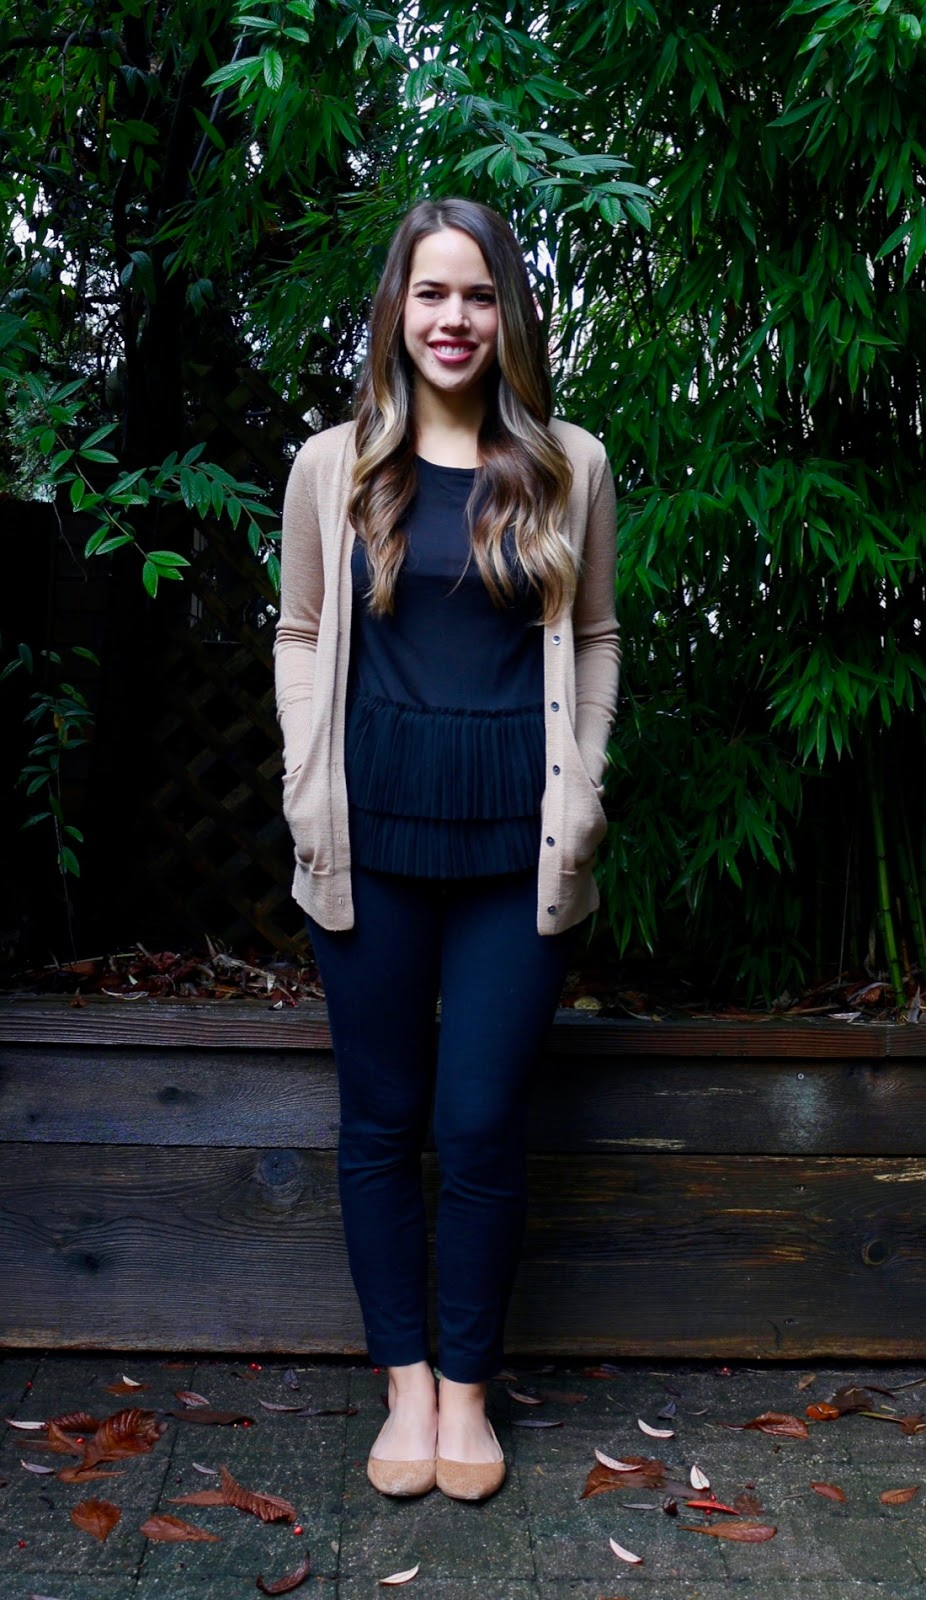 Jules in Flats - Black + Camel (Business Casual Fall Workwear on a Budget)